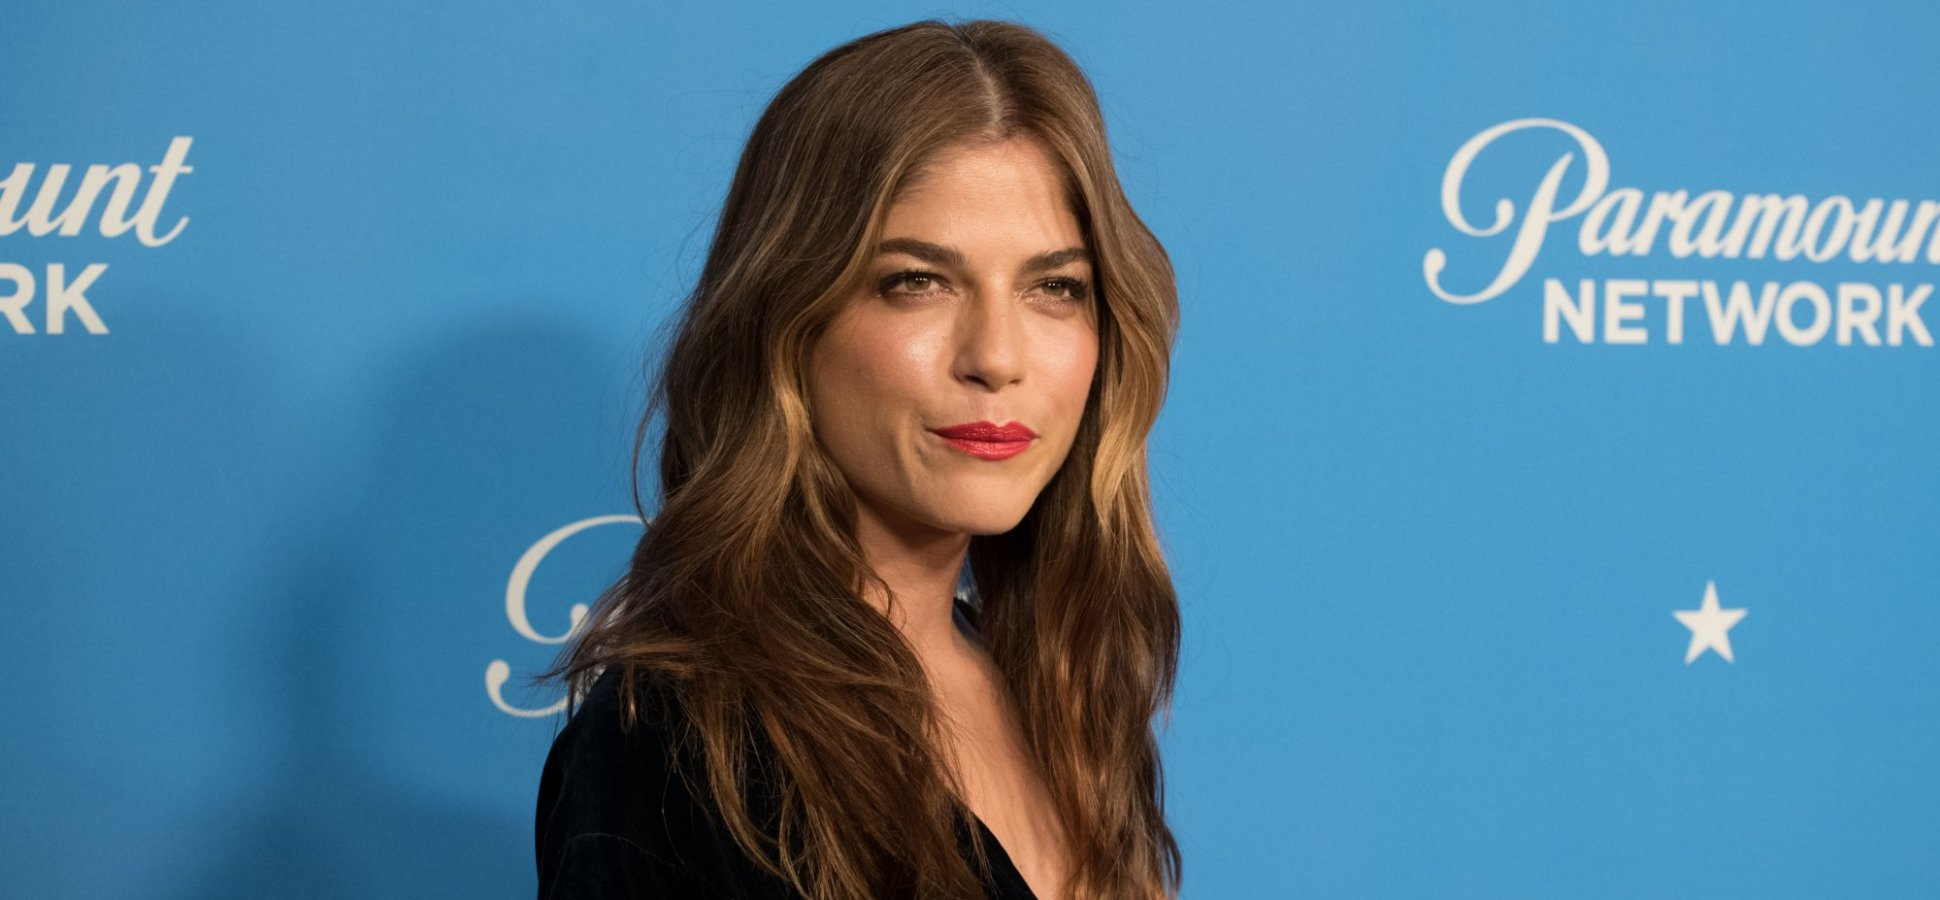 Actress Selma Blair's Raw and Moving Instagram Post Is a Masterpiece of Emotional Intelligence | Inc.com